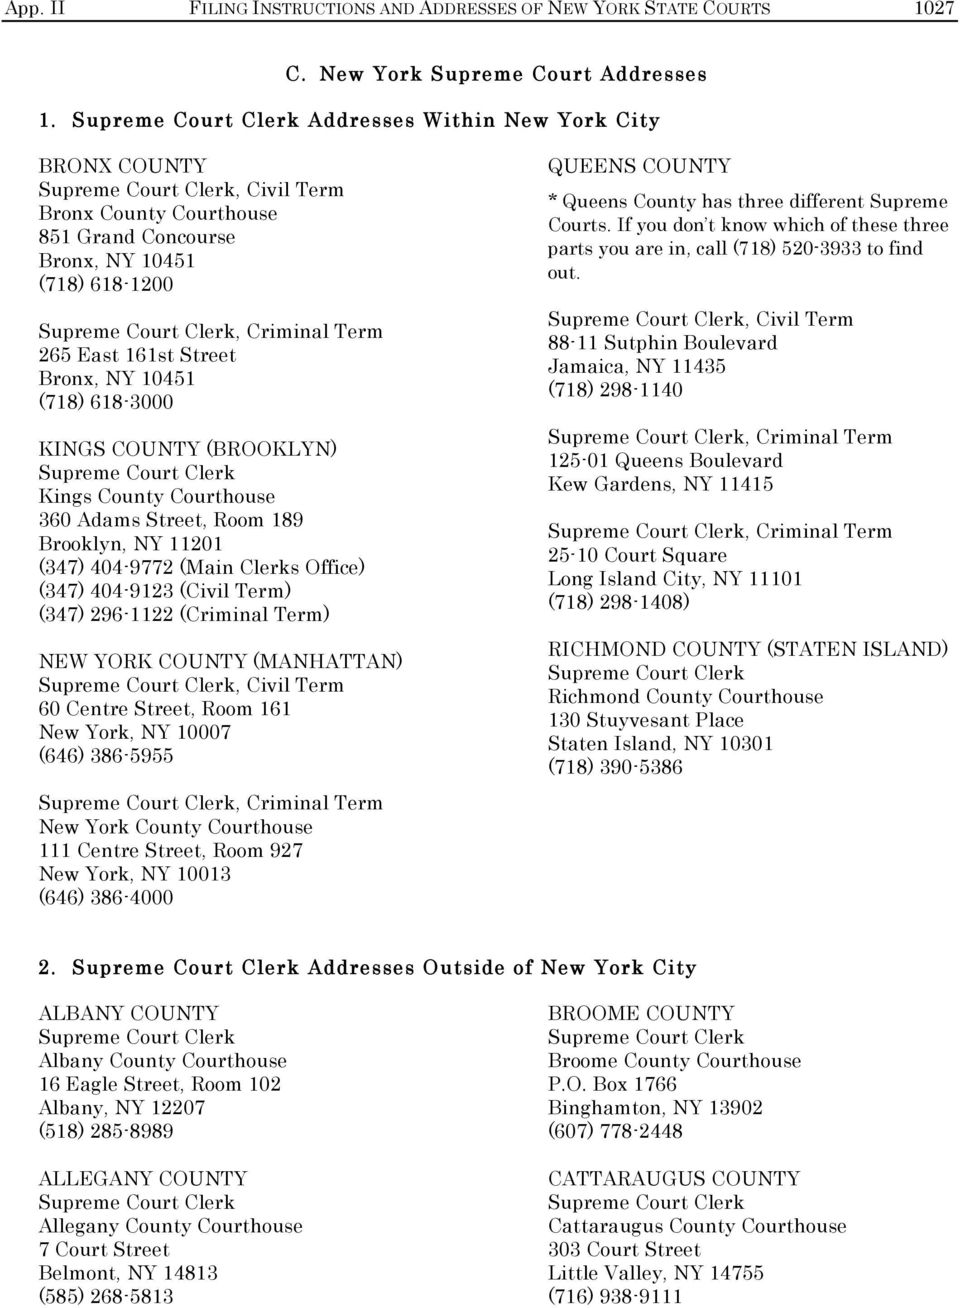 COUNTY (BROOKLYN) Kings County 360 Adams Street, Room 189 Brooklyn, NY 11201 (347) 404-9772 (Main Clerks Office) (347) 404-9123 (Civil Term) (347) 296-1122 (Criminal Term) NEW YORK COUNTY